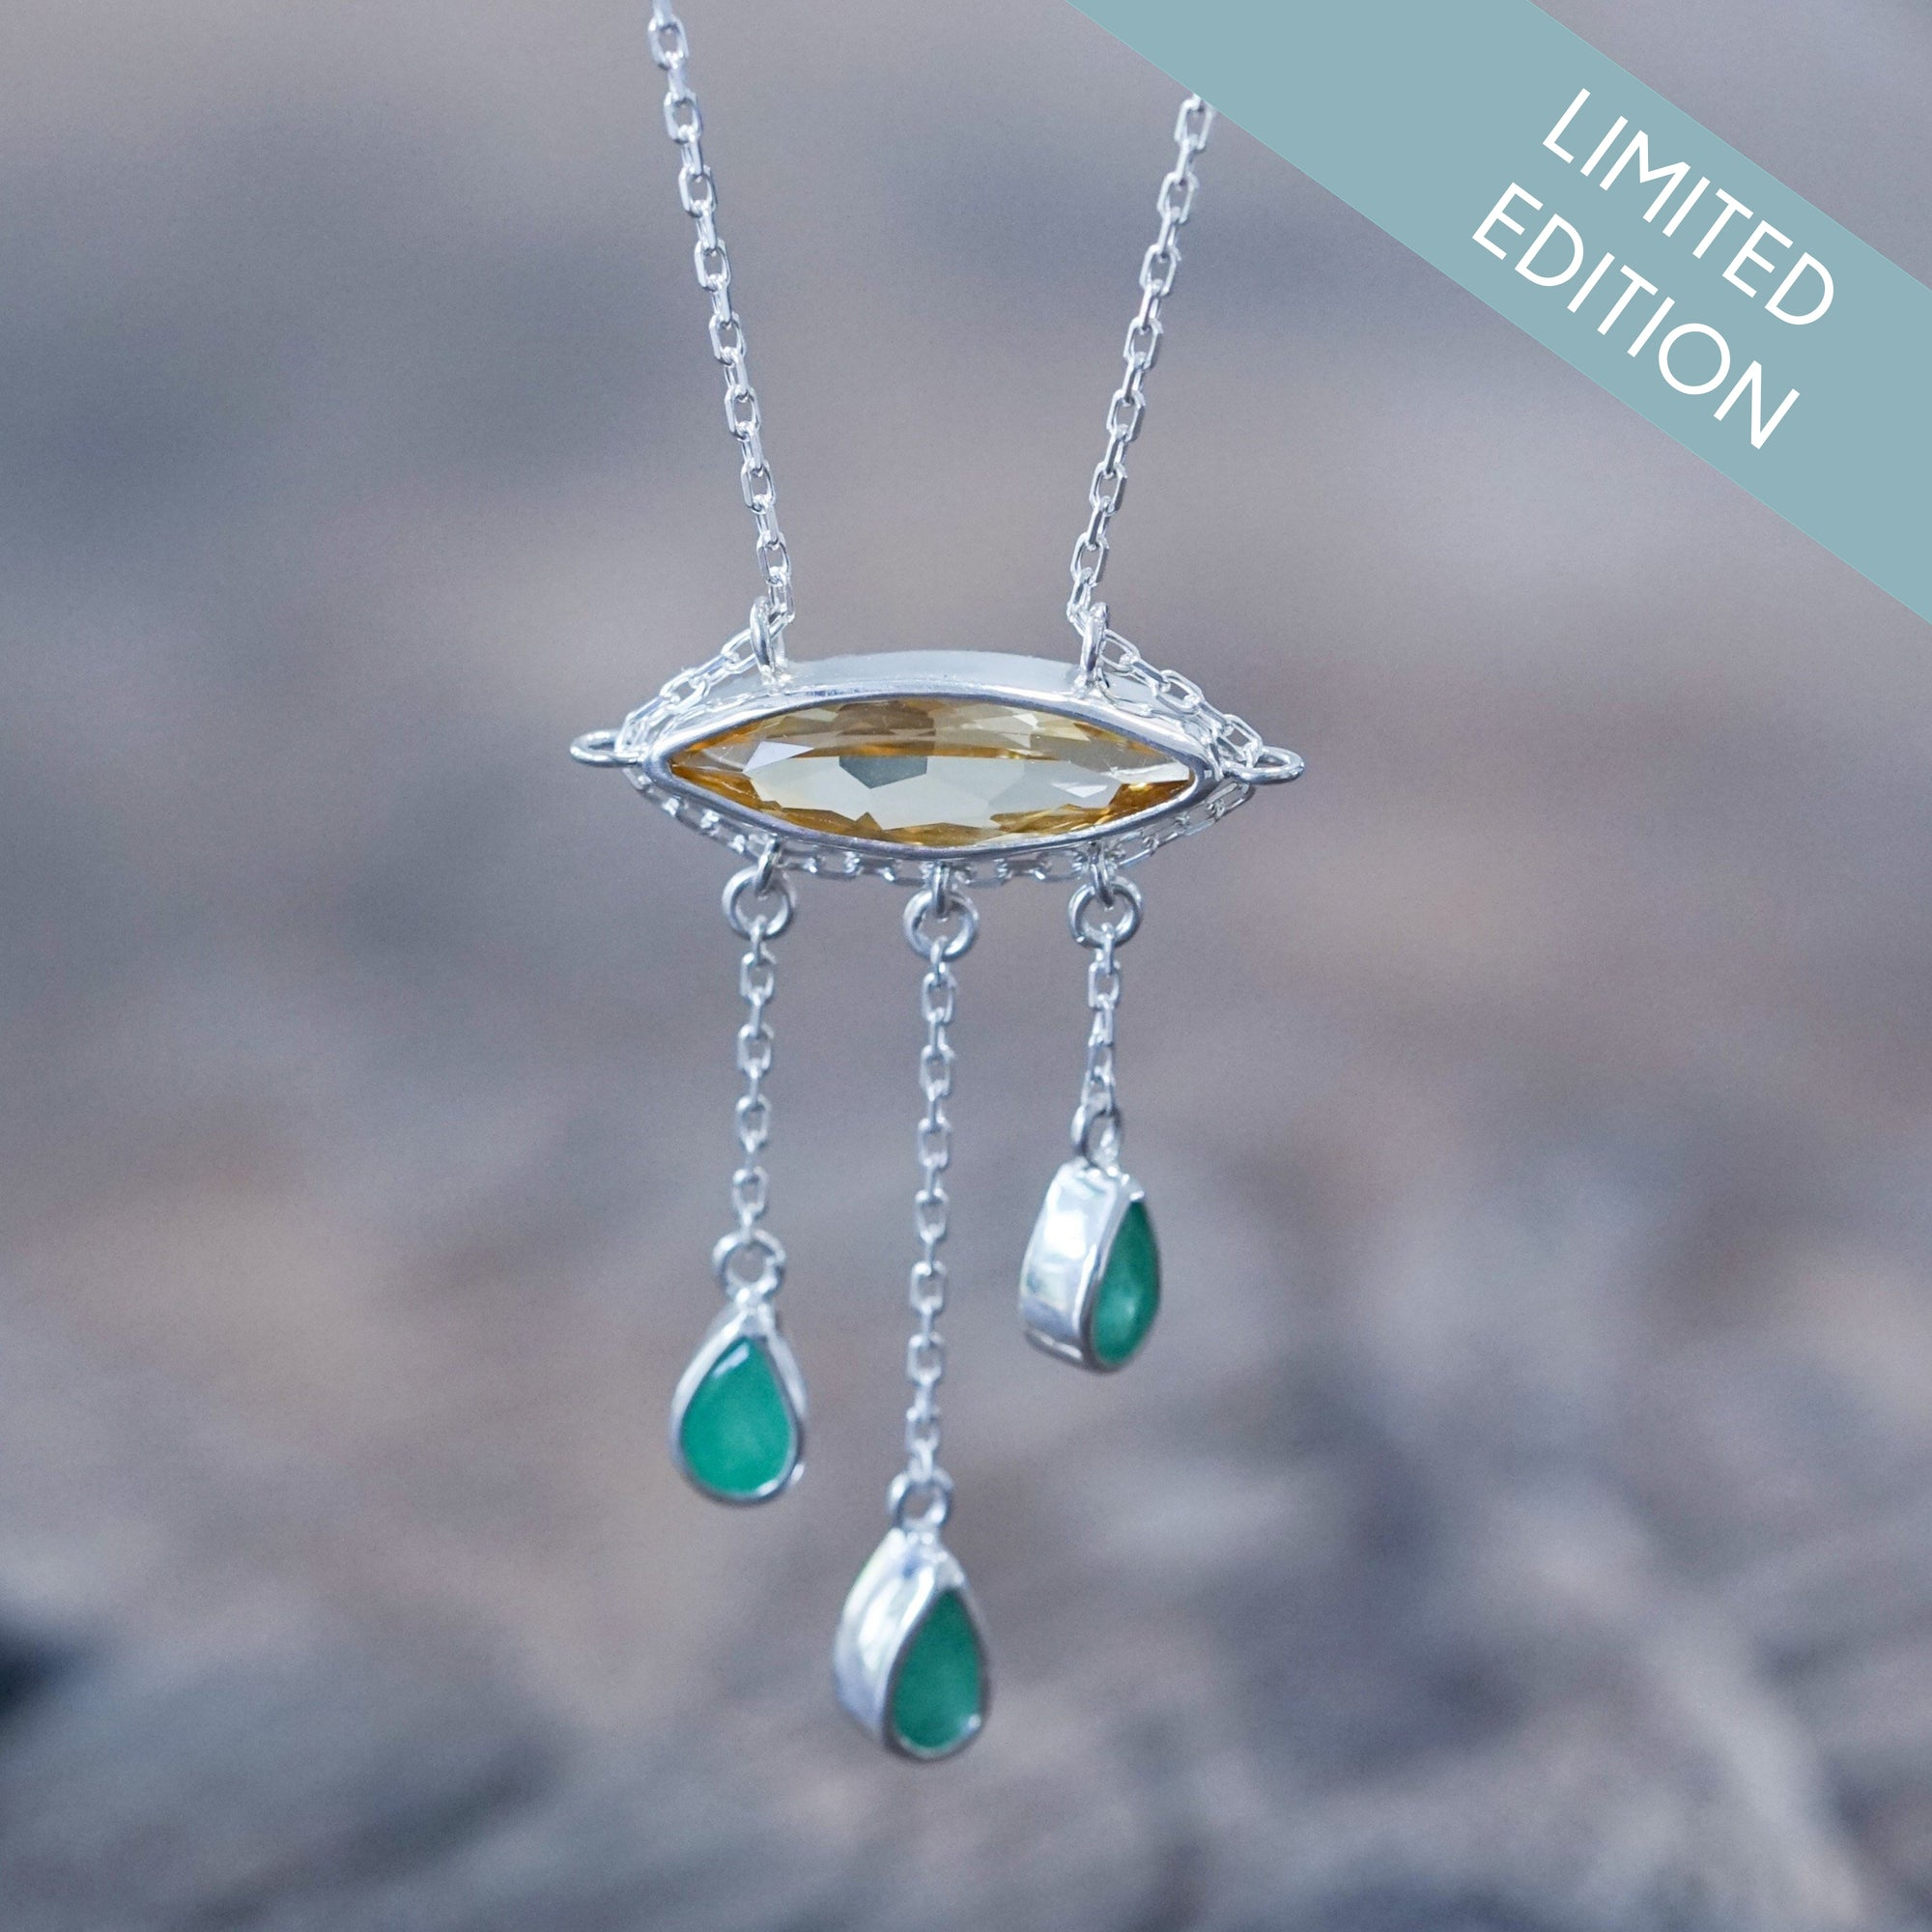 Sunshine And Rain Citrine and Emerald Necklace